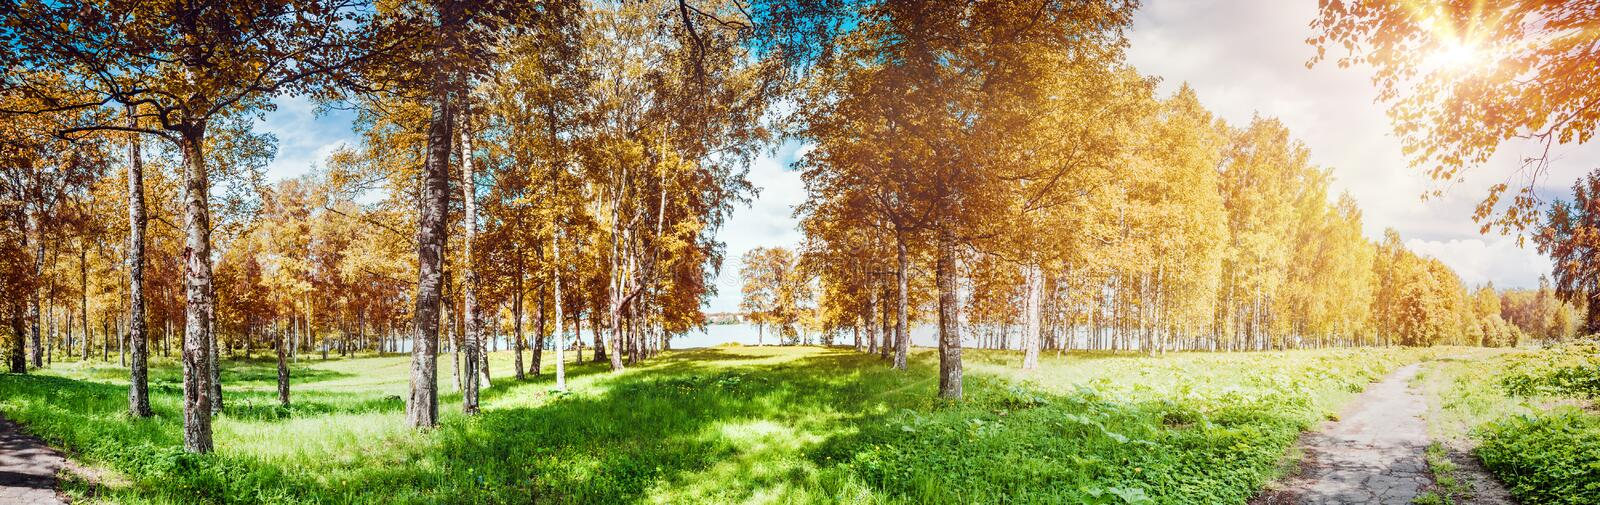 Autumn park panorama. Ecology plants outdoor background stock photography